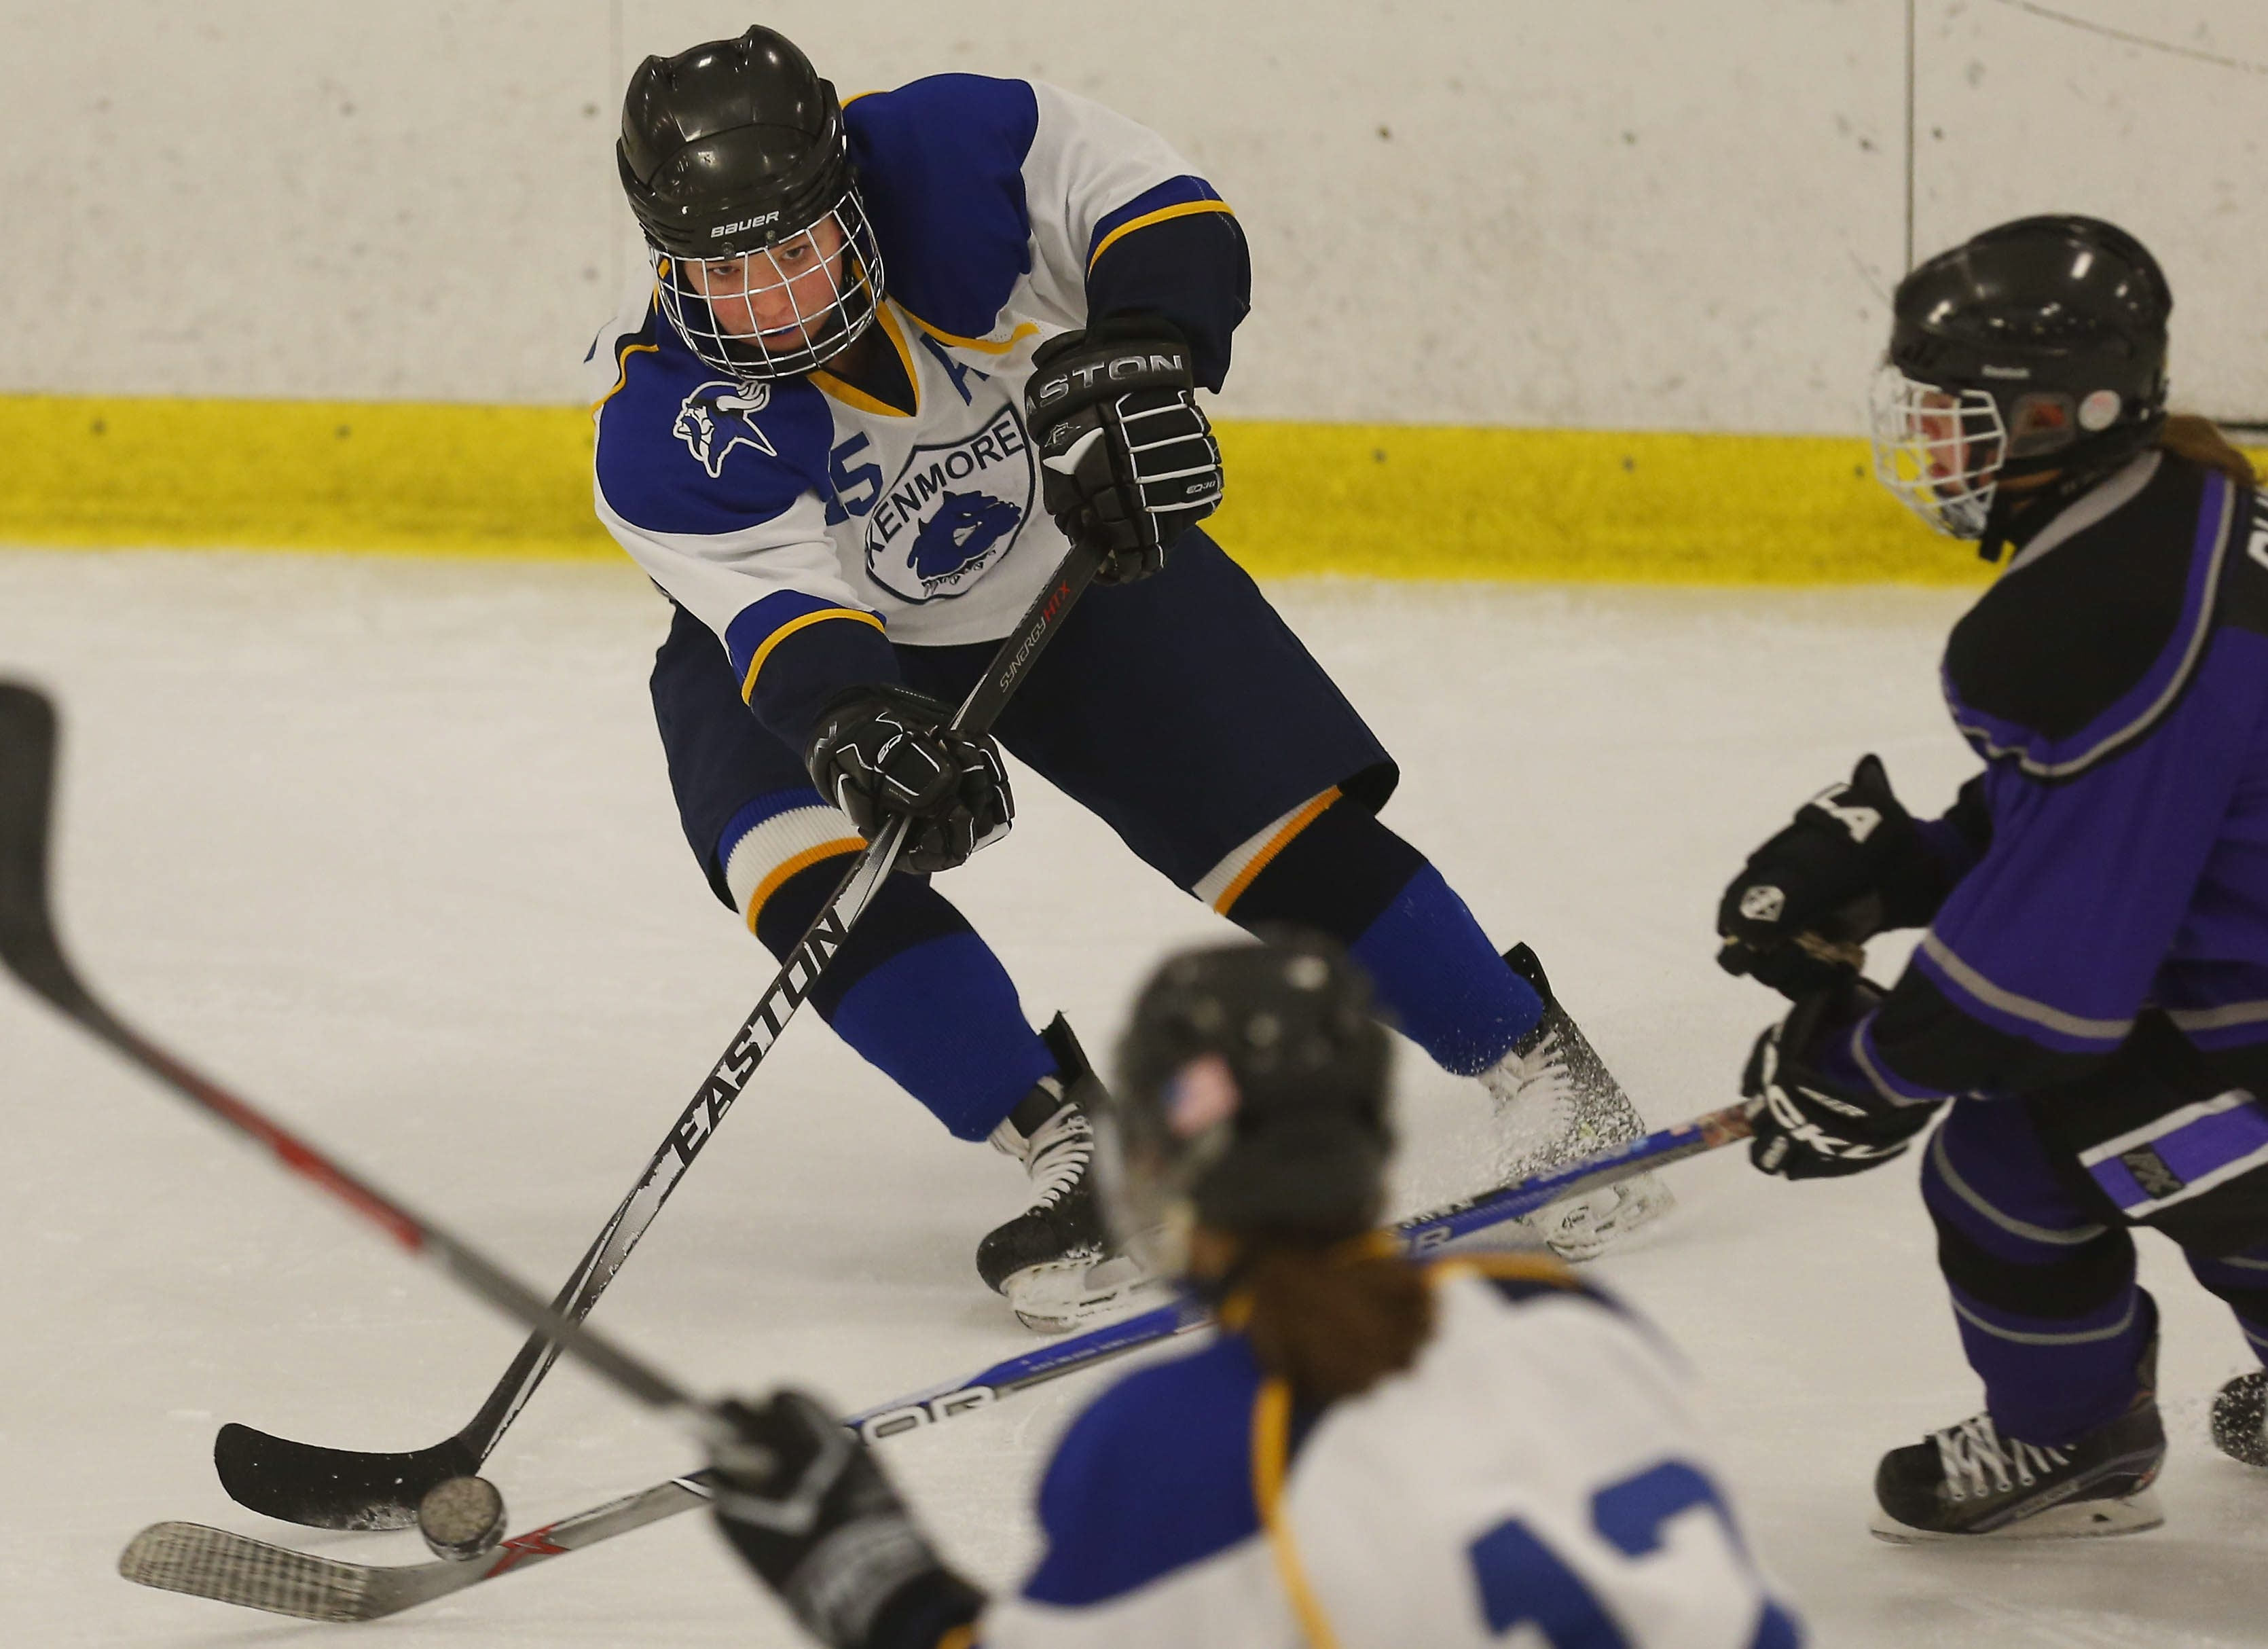 Kenmore/Grand Island's Grace Simmons clears the puck during Thursday's game against Monsignor Martin at the North Buffalo Ice Rink. Monsignor Martin won, 4-1.